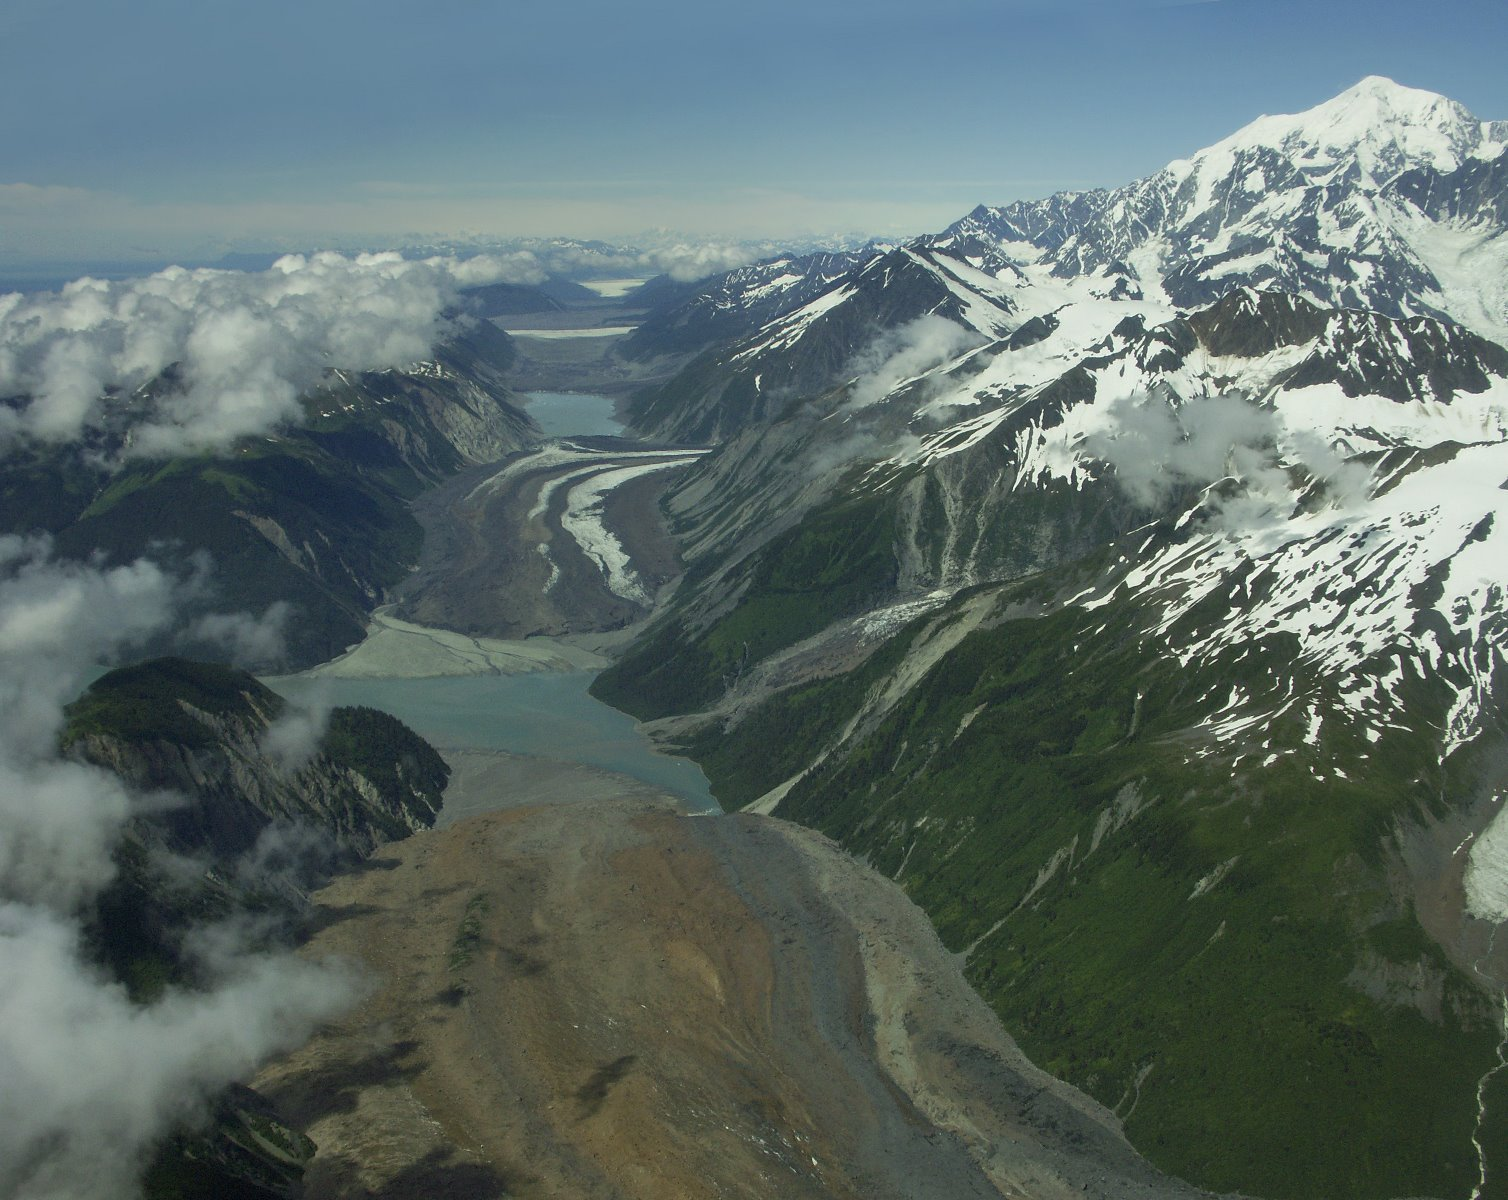 Desolation Valley is the active seam between North American and the Pacific crustal tectonic plate.